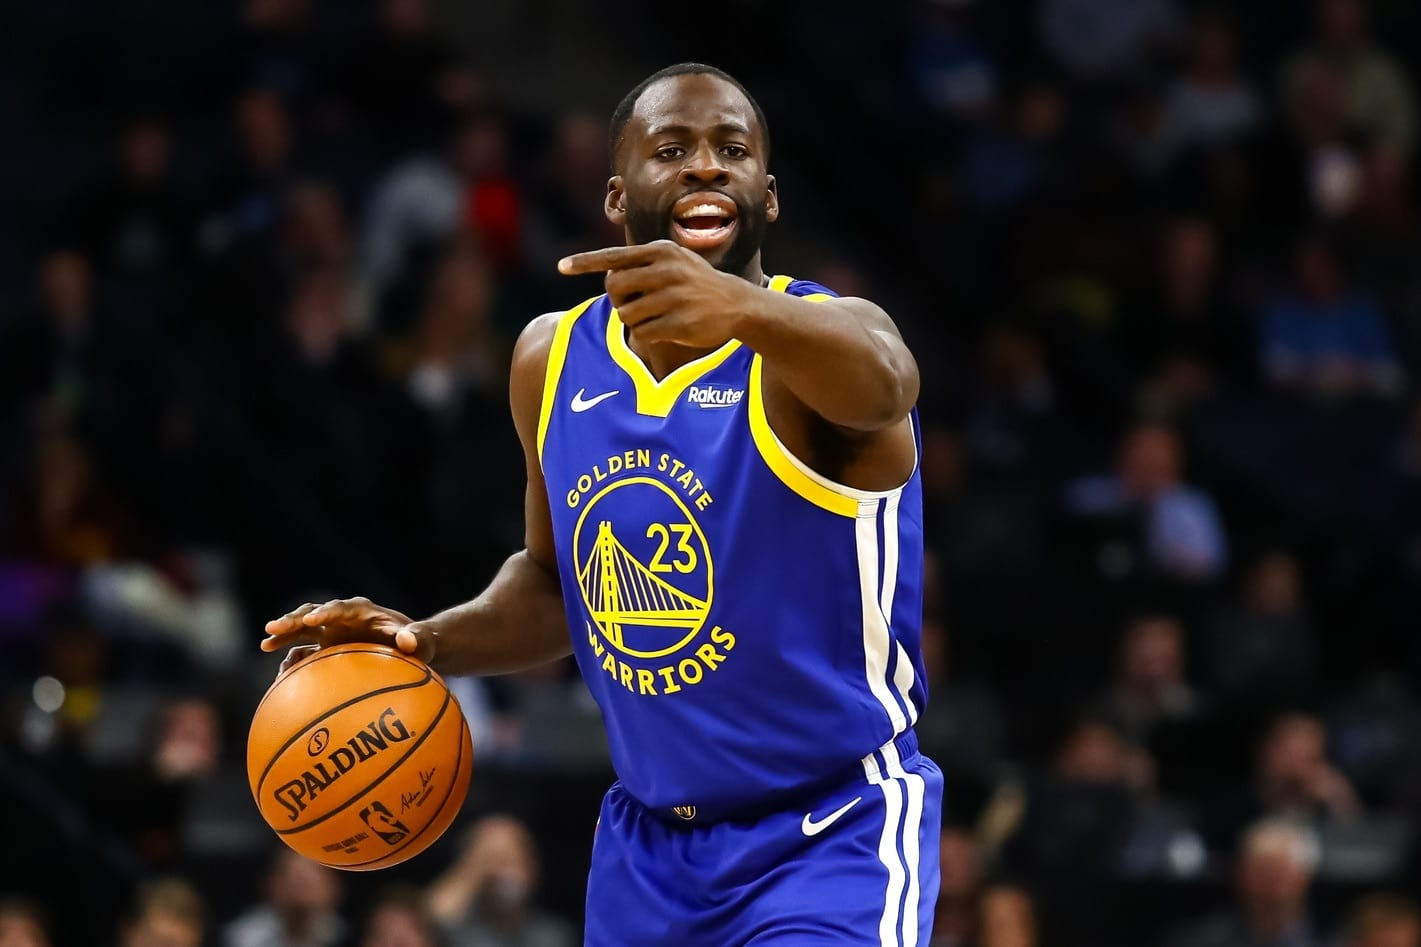 Draymond Green Says He Was 'Dead Ass Wrong' on Ejection